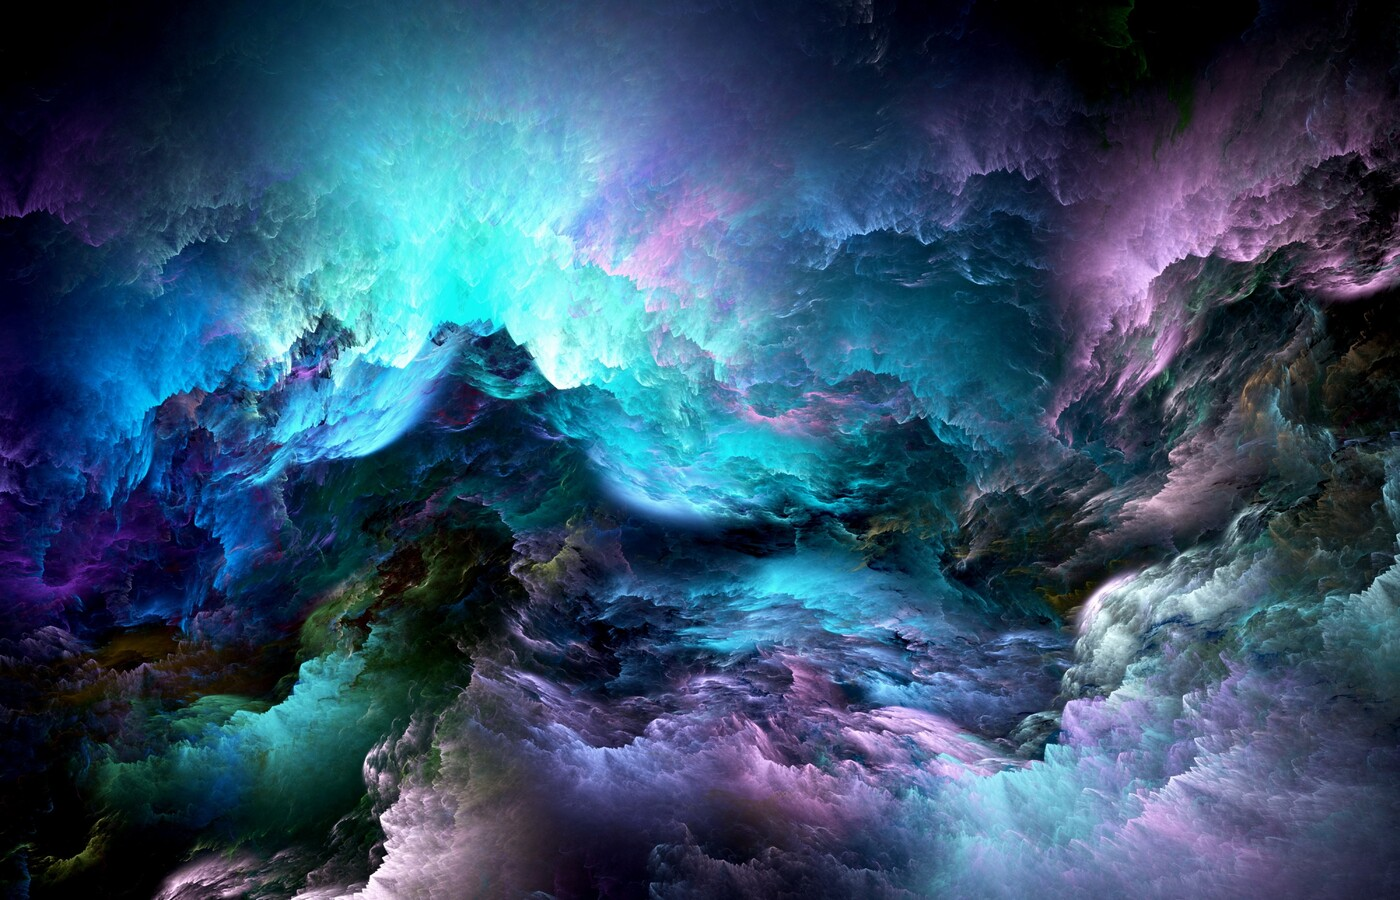 glowing-clouds-abstract-5k-lv.jpg